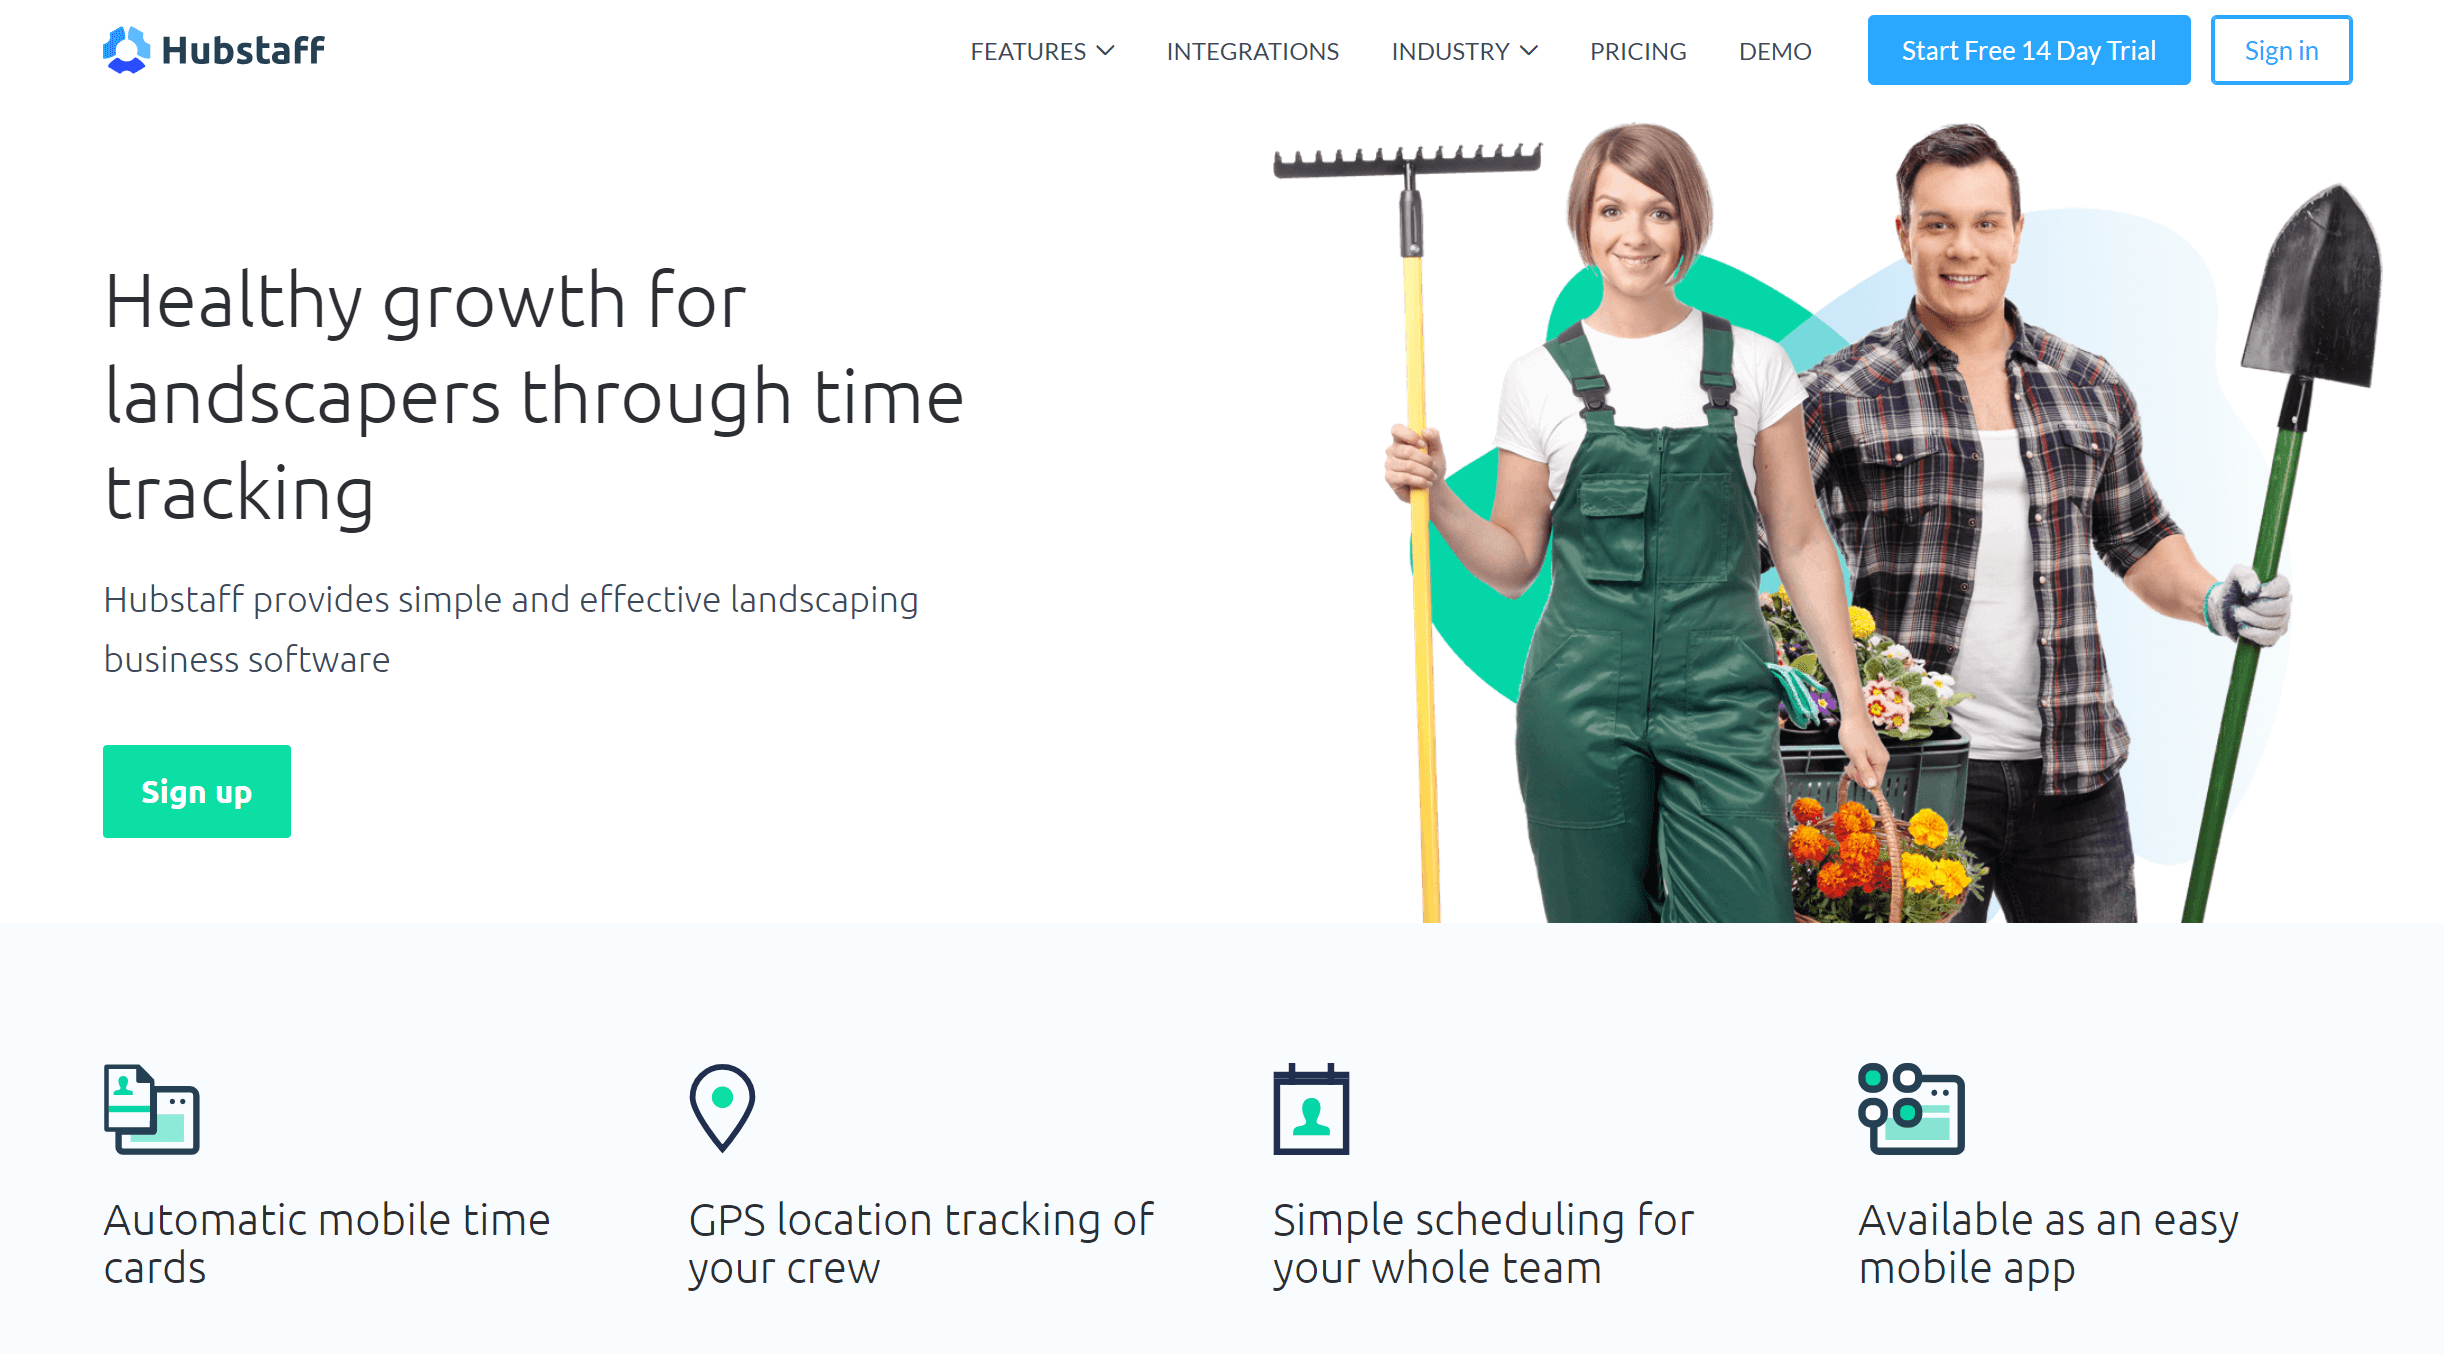 hubstaff gps time tracking for landscaping